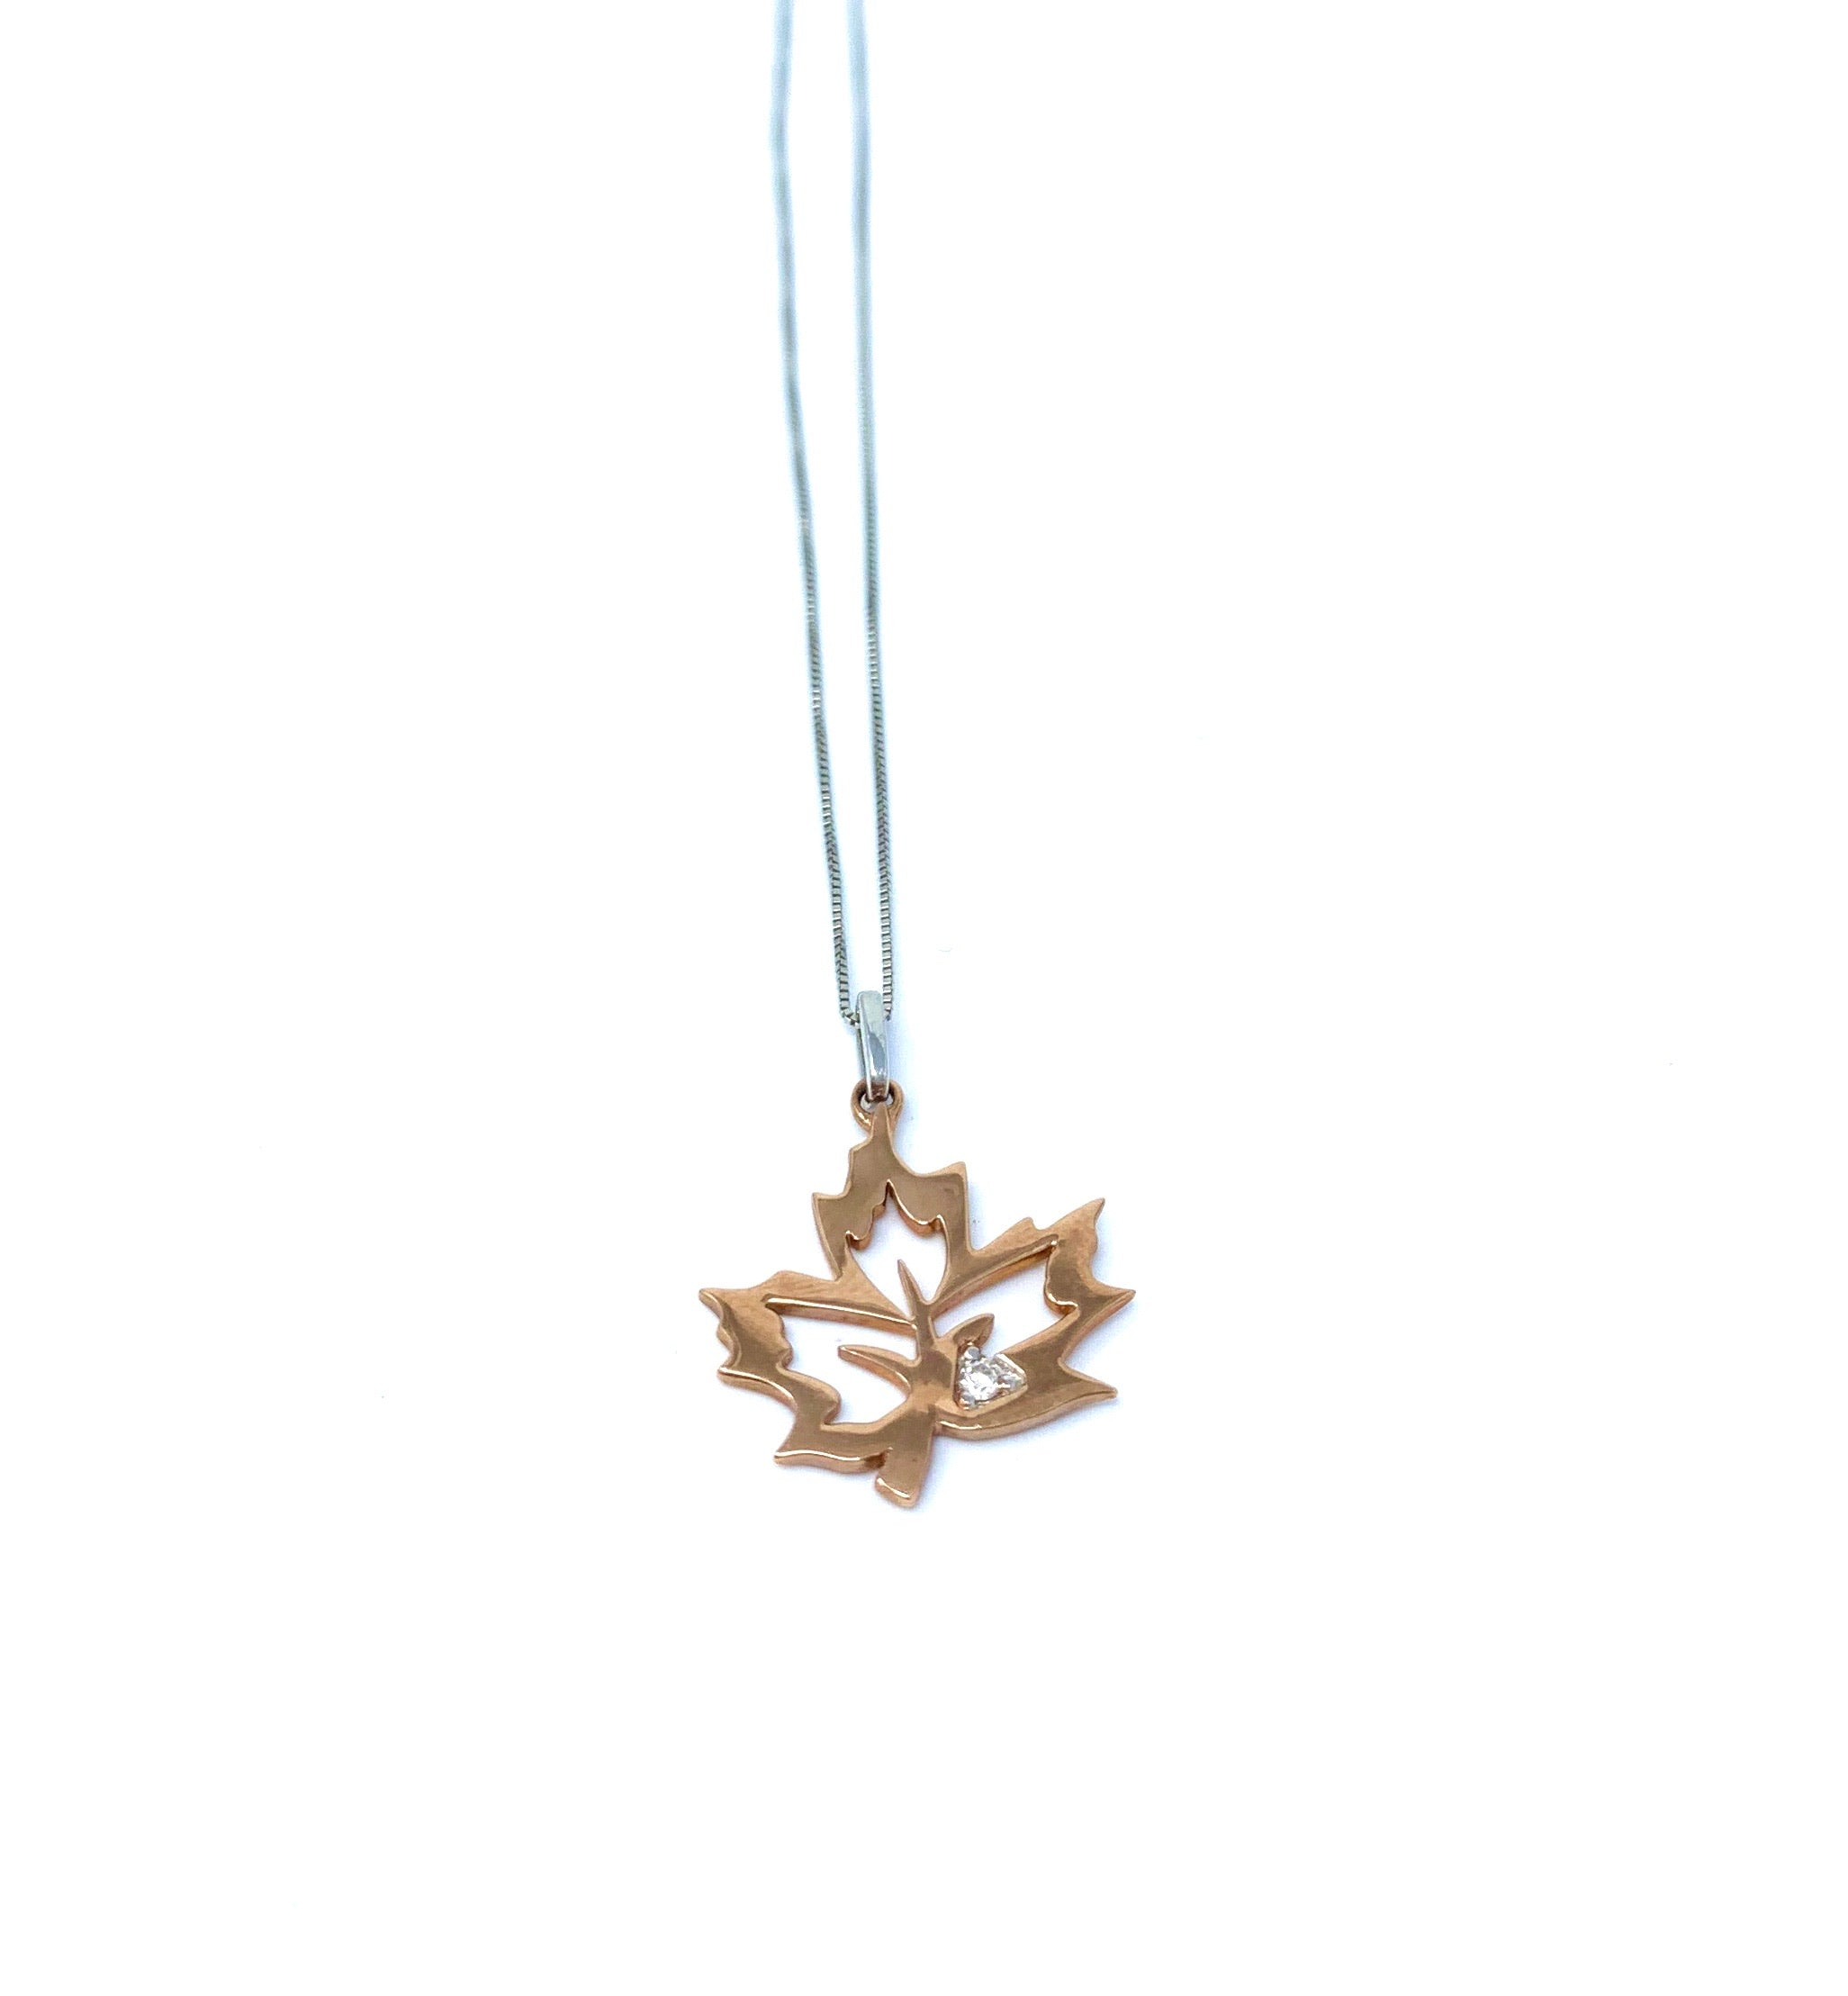 Canadian Diamond Pendant